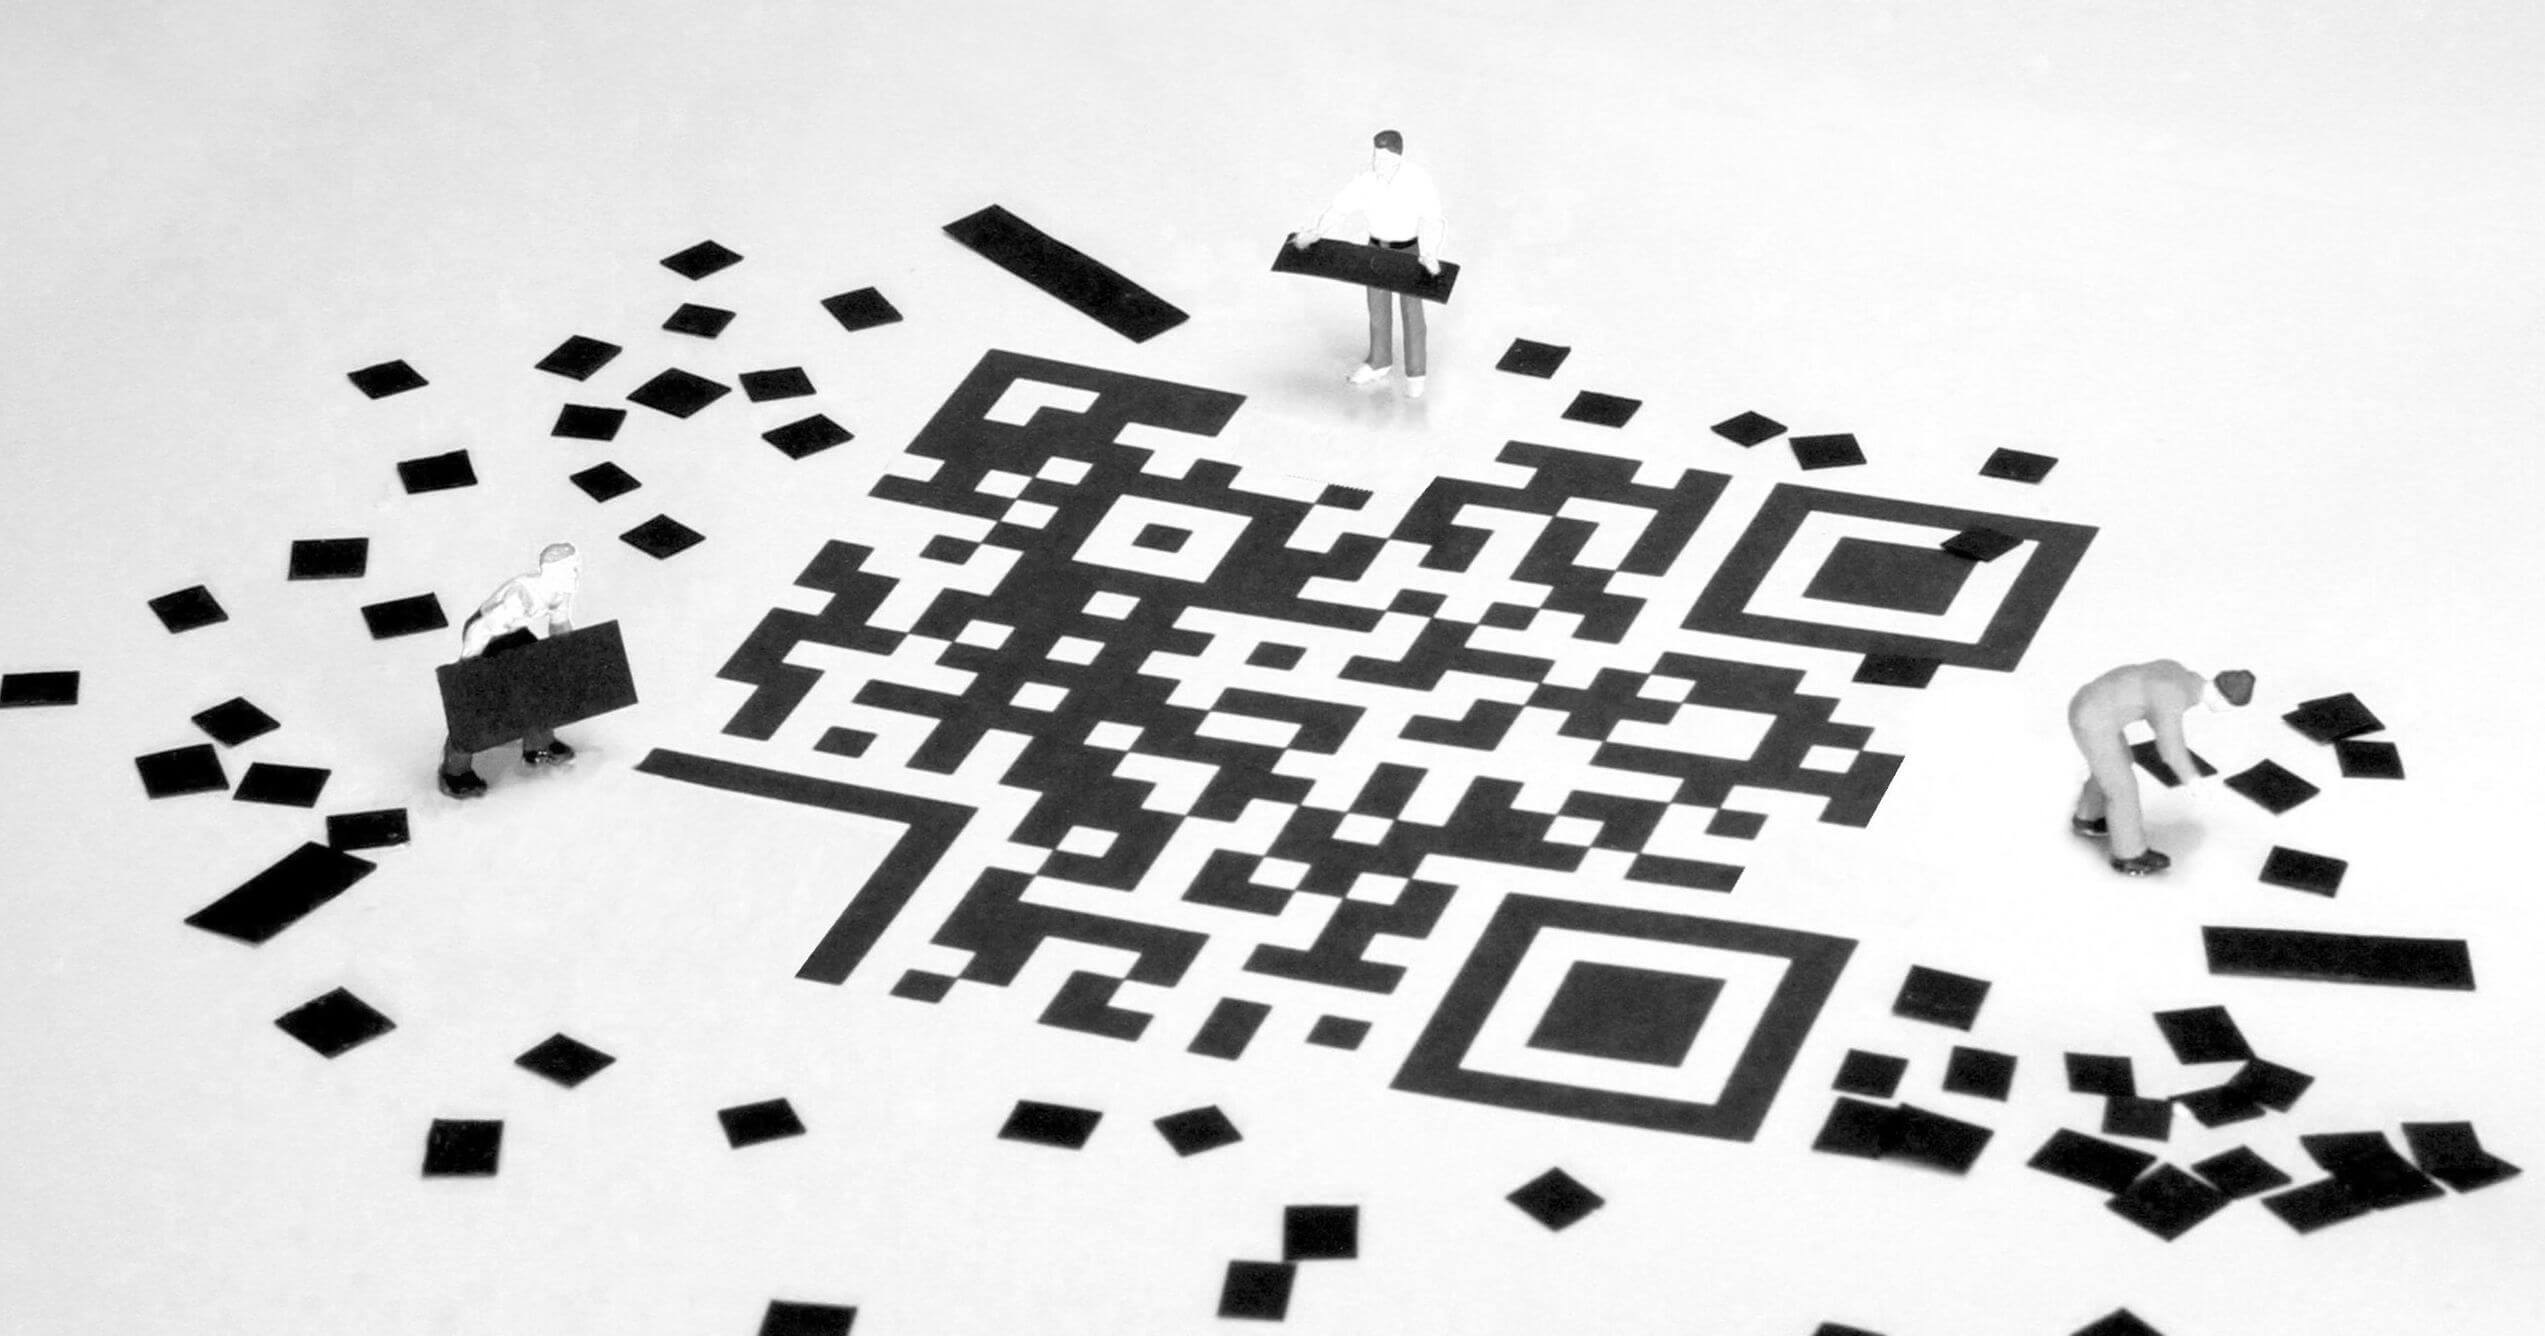 QR codes and their applications in CONREGO